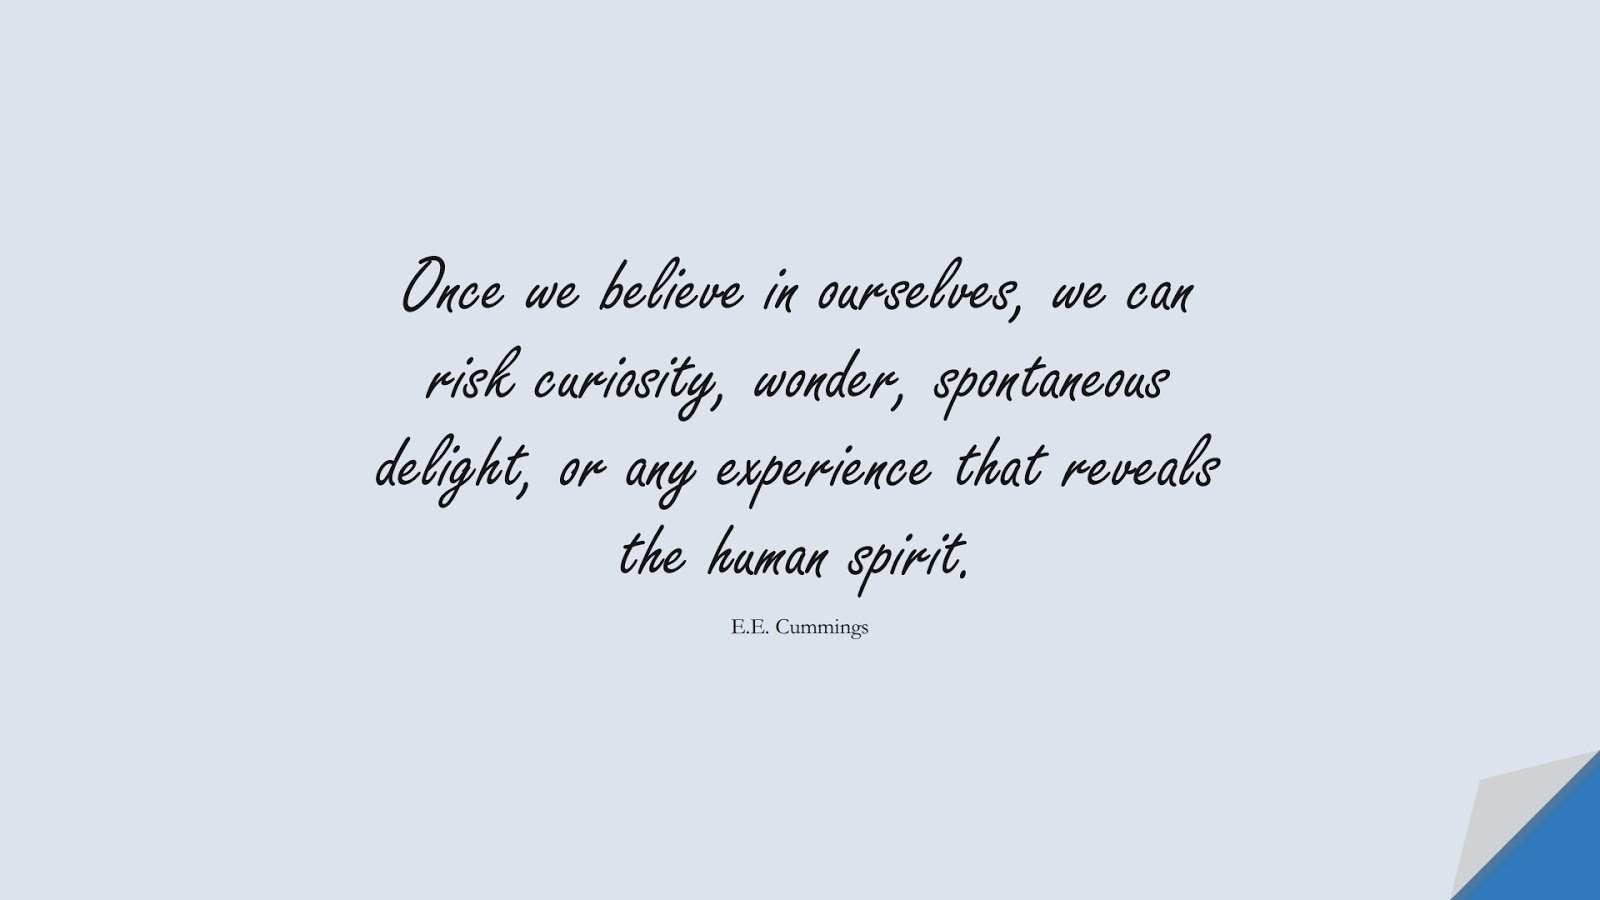 Once we believe in ourselves, we can risk curiosity, wonder, spontaneous delight, or any experience that reveals the human spirit. (E.E. Cummings);  #InspirationalQuotes